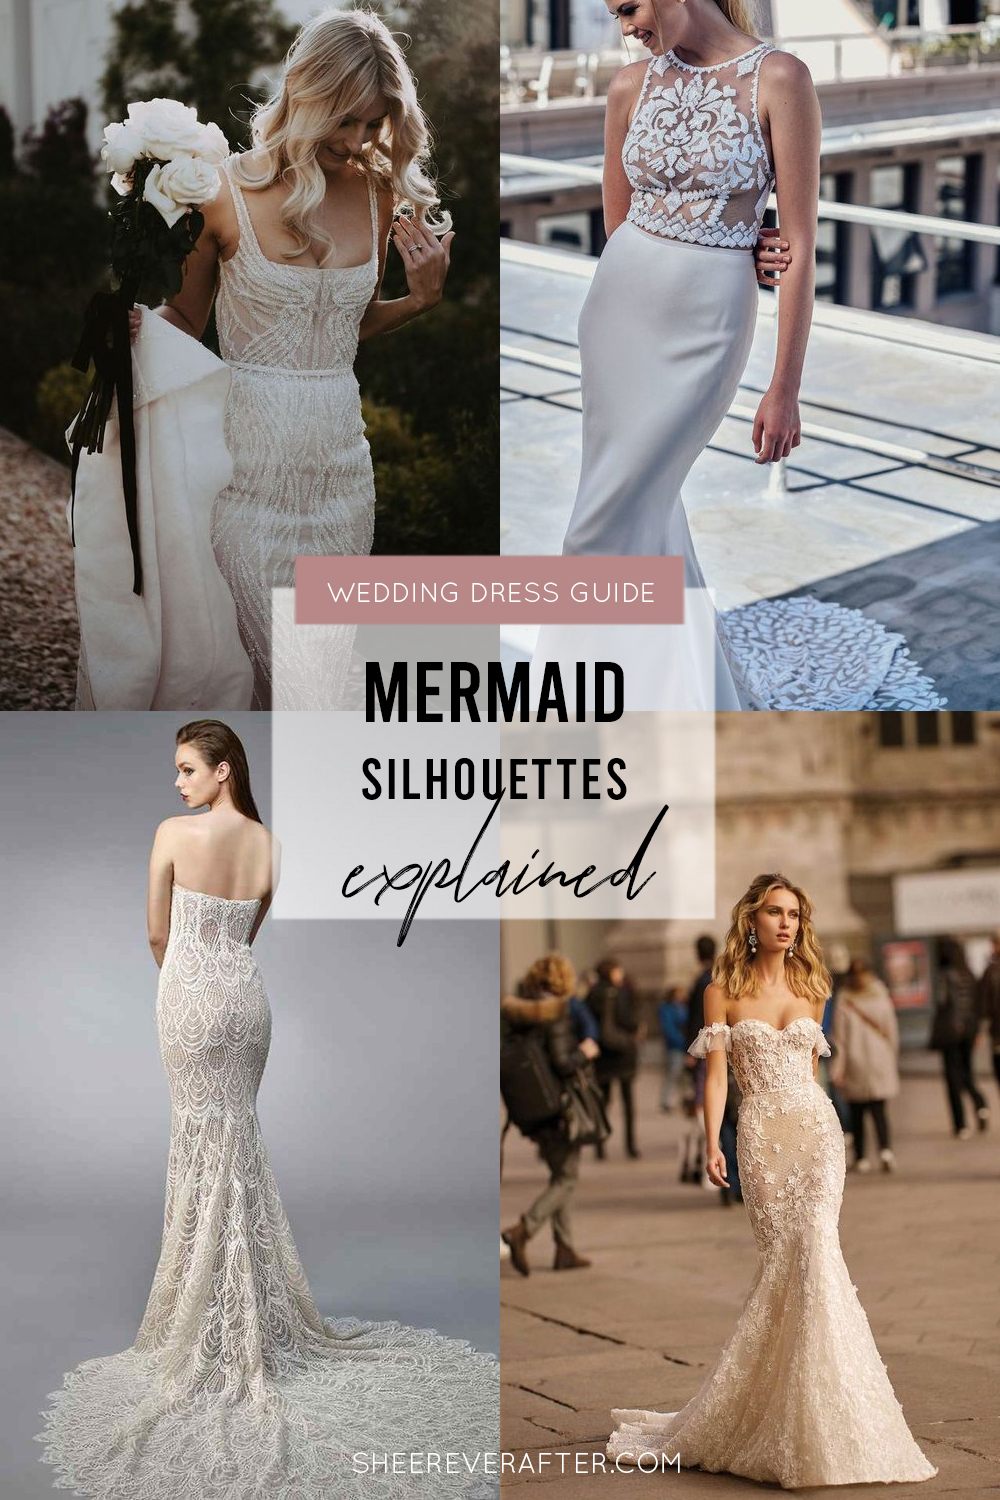 #weddingdress #weddingdresssilhouettes #bridalgown #bridal #weddingday #weddingideas #beautifuldress #mermaid